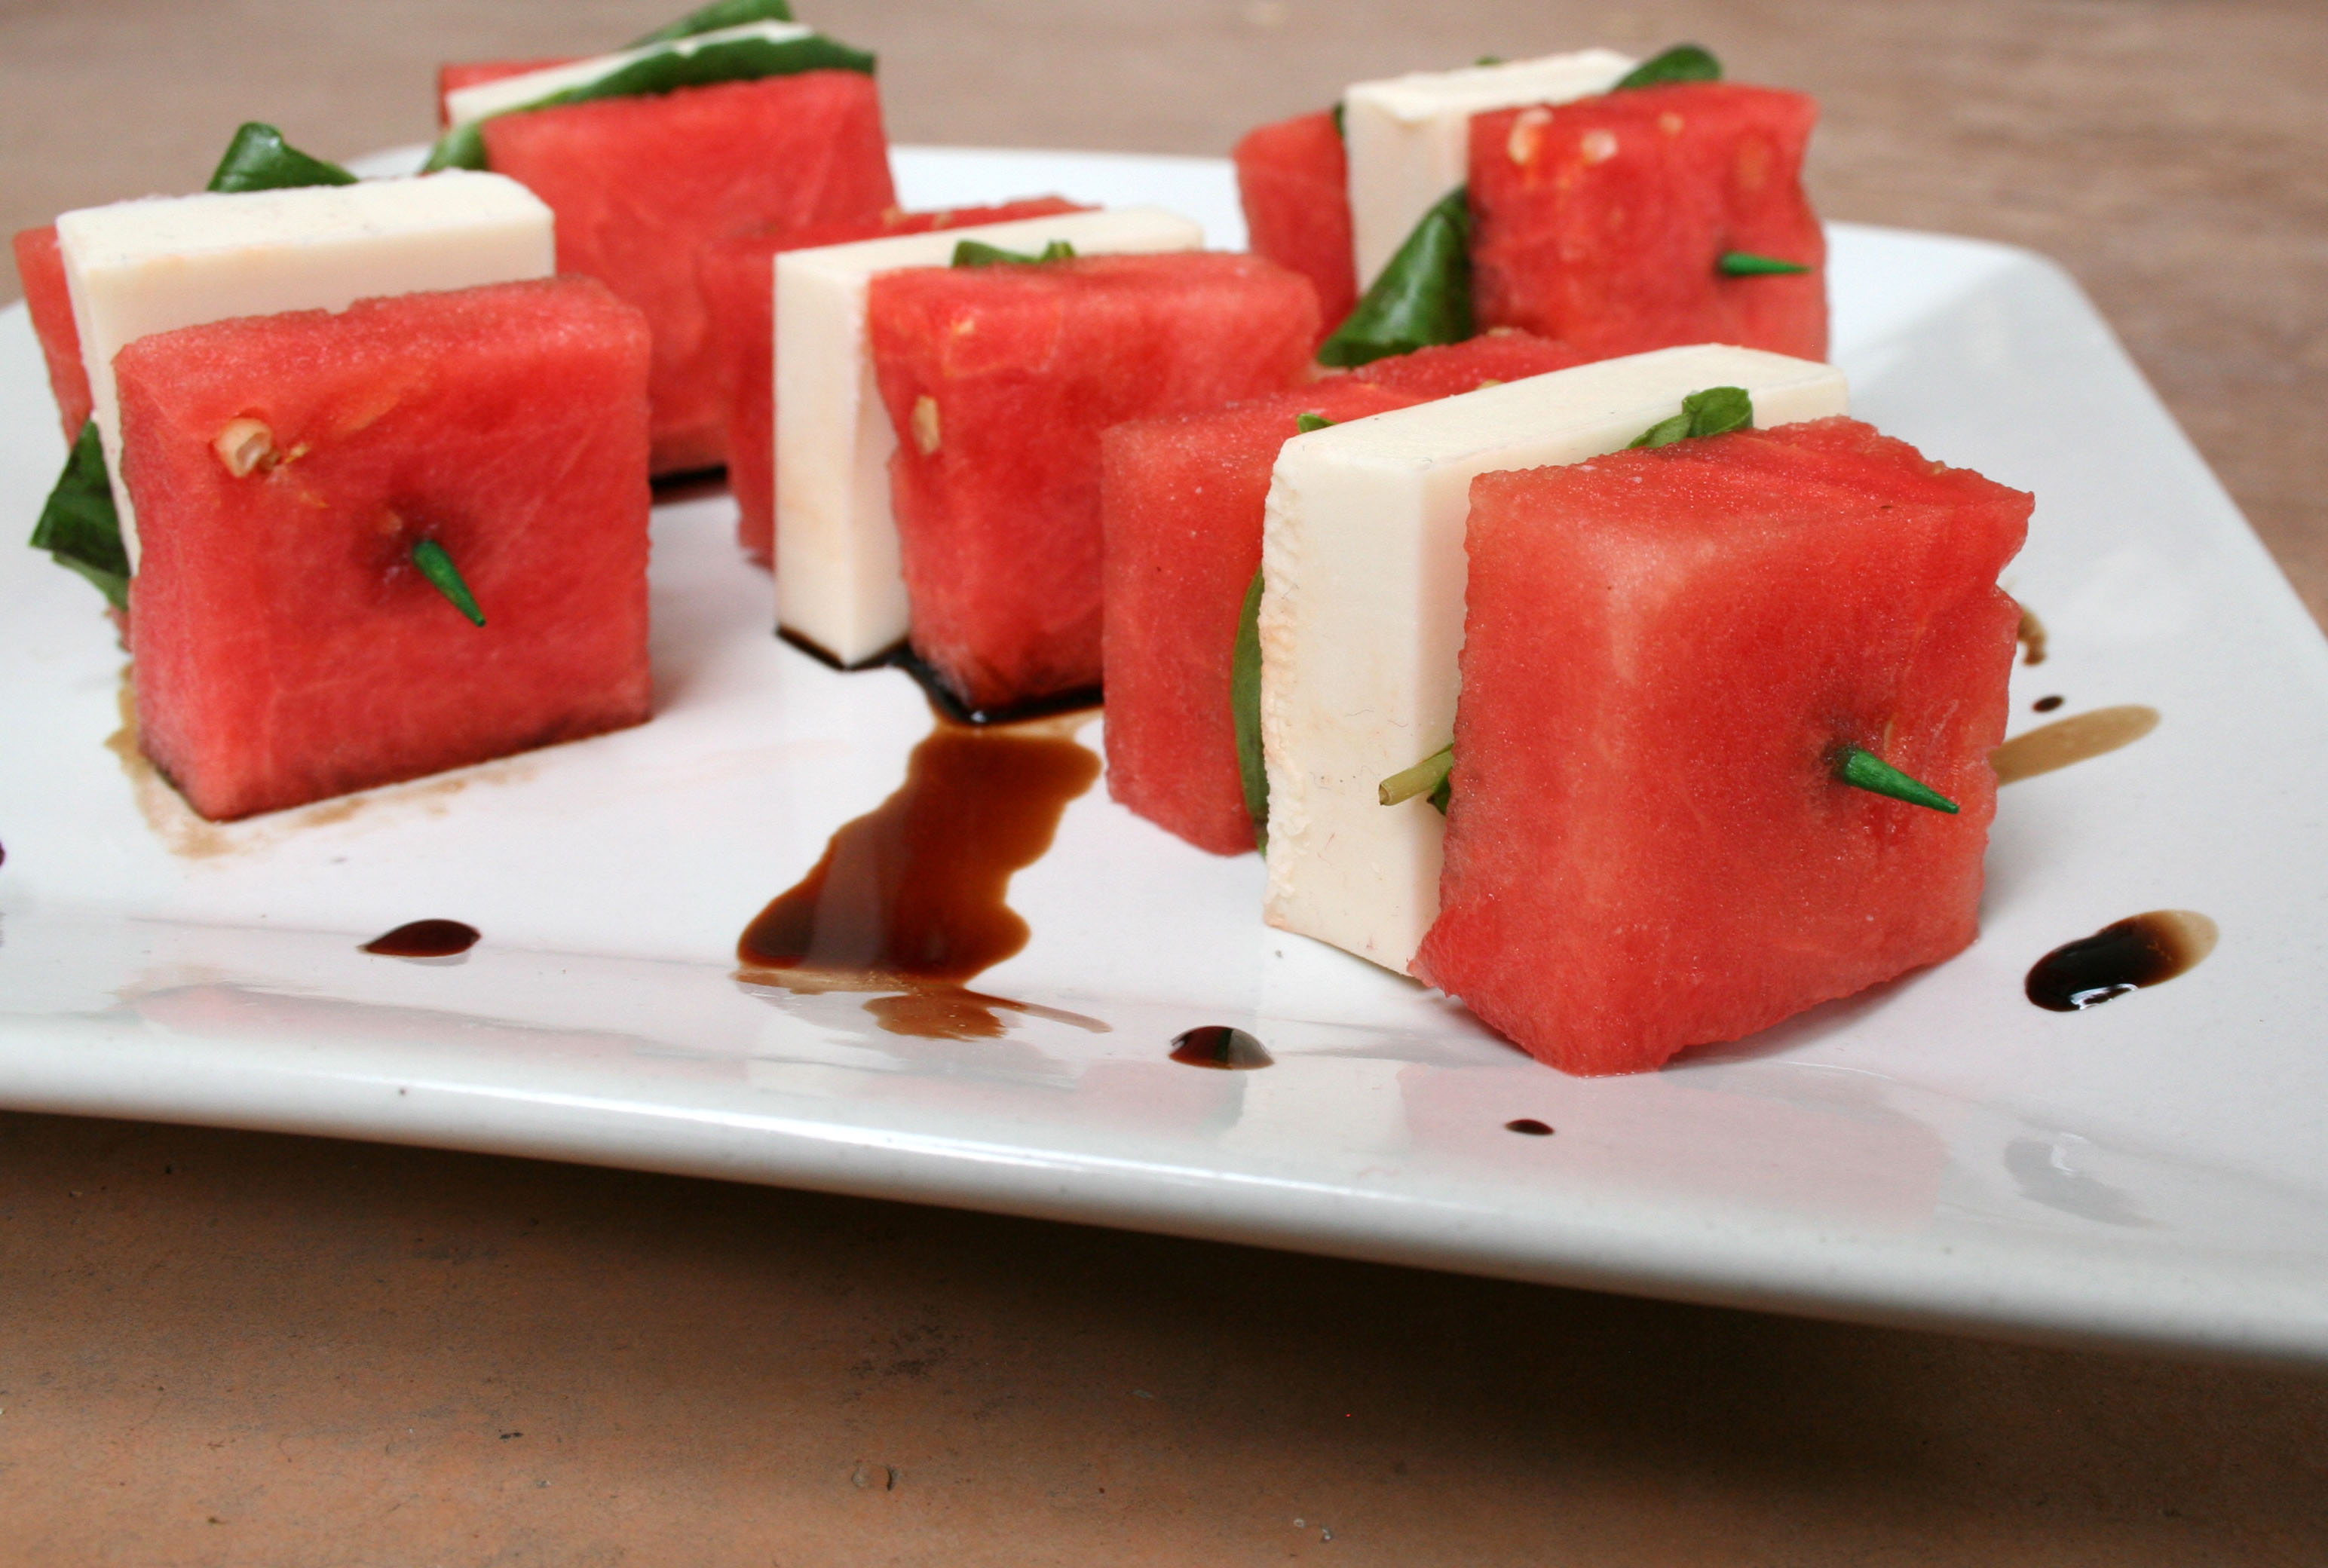 Watermelon and Vegan Mozzarella Skewers with Balsamic Reduction